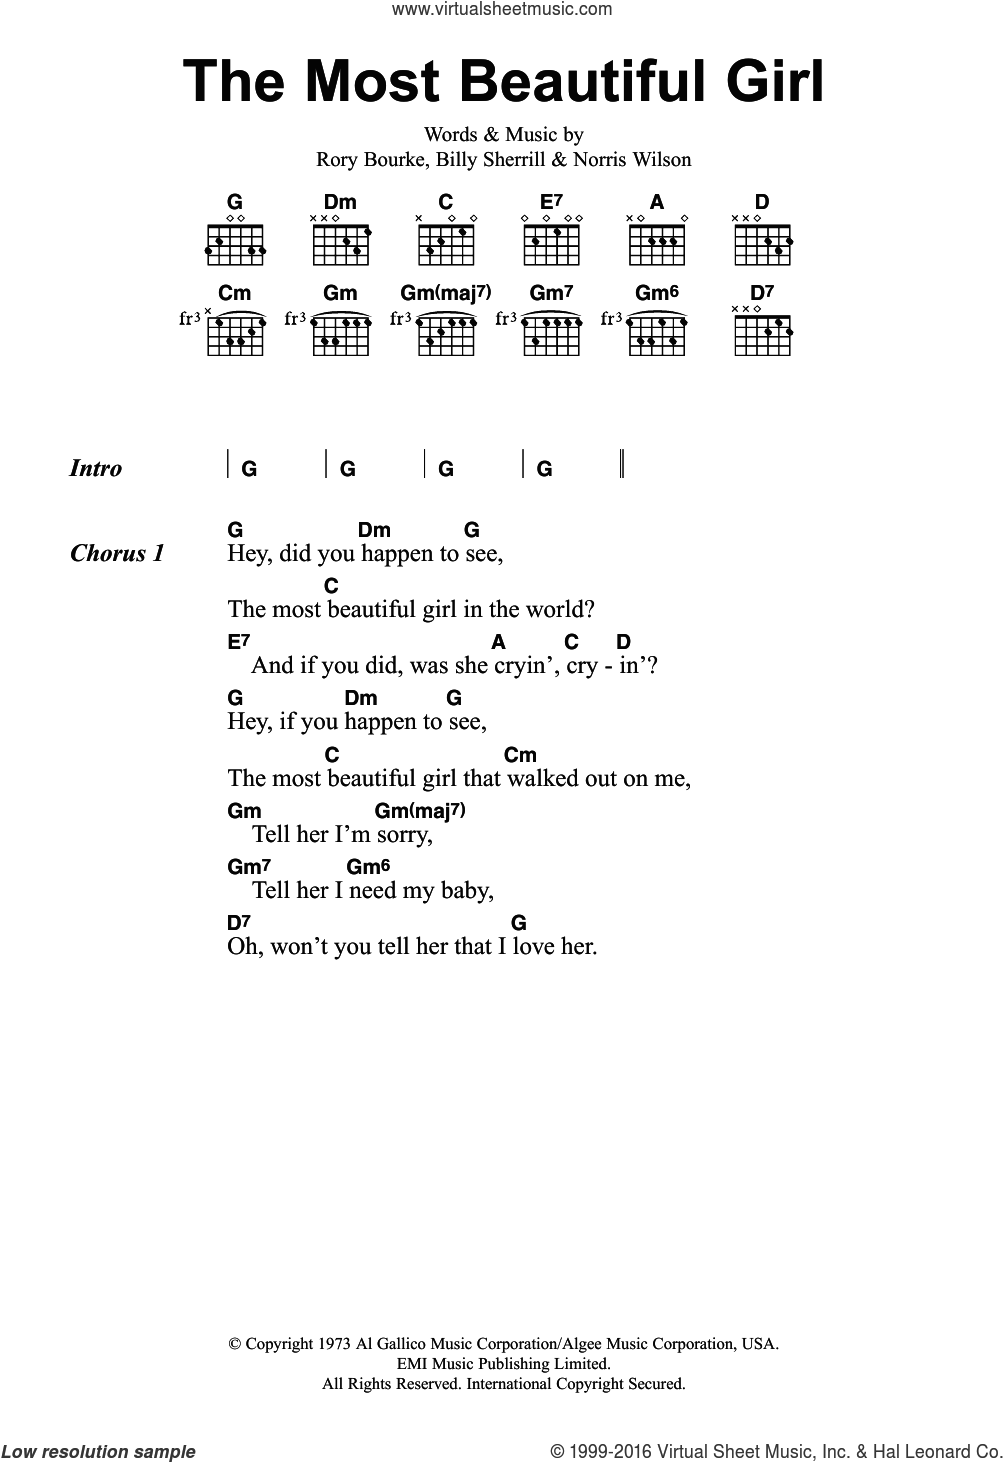 The Most Beautiful Girl sheet music for guitar (chords) by Charlie Rich, Billy Sherrill, Norris Wilson and Rory Bourke. Score Image Preview.